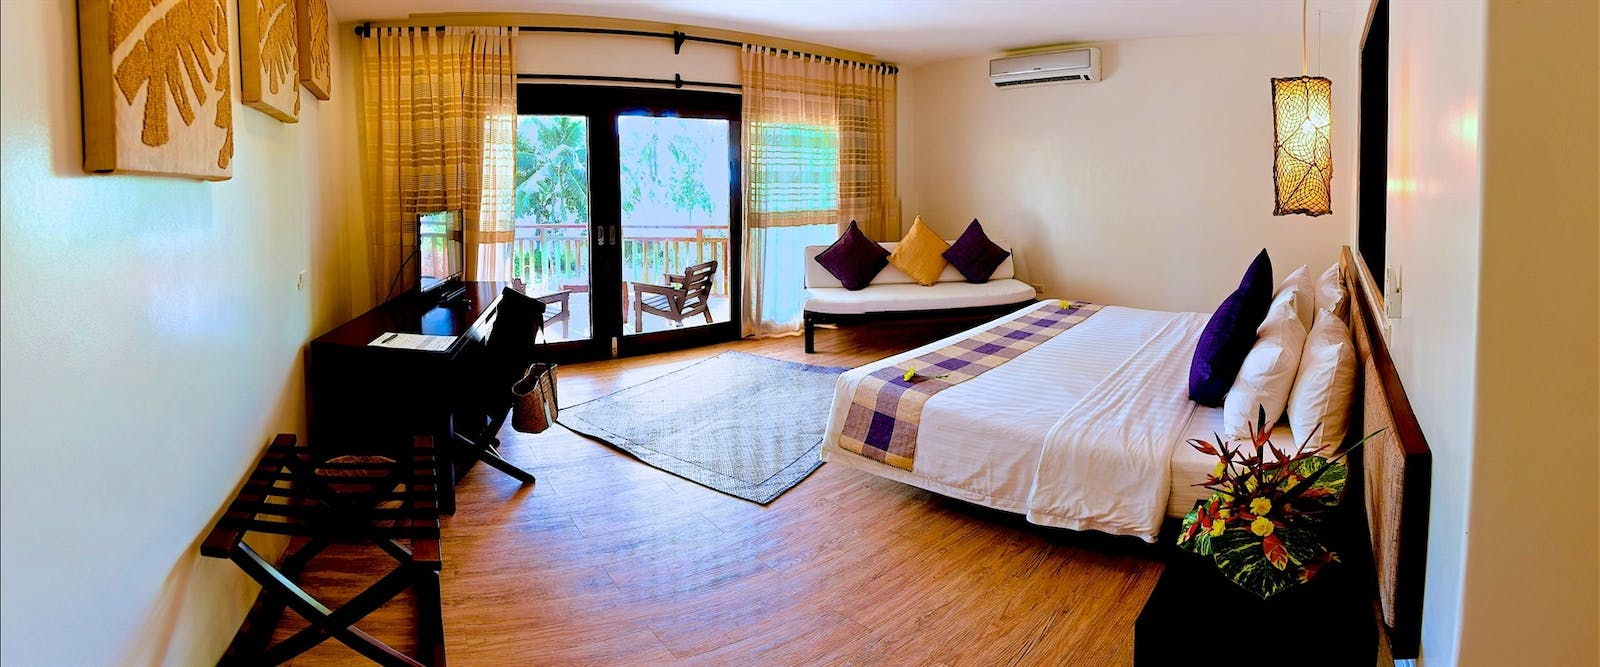 Double Bedroom at Amun Ini Beach Resort & Spa, Philippines